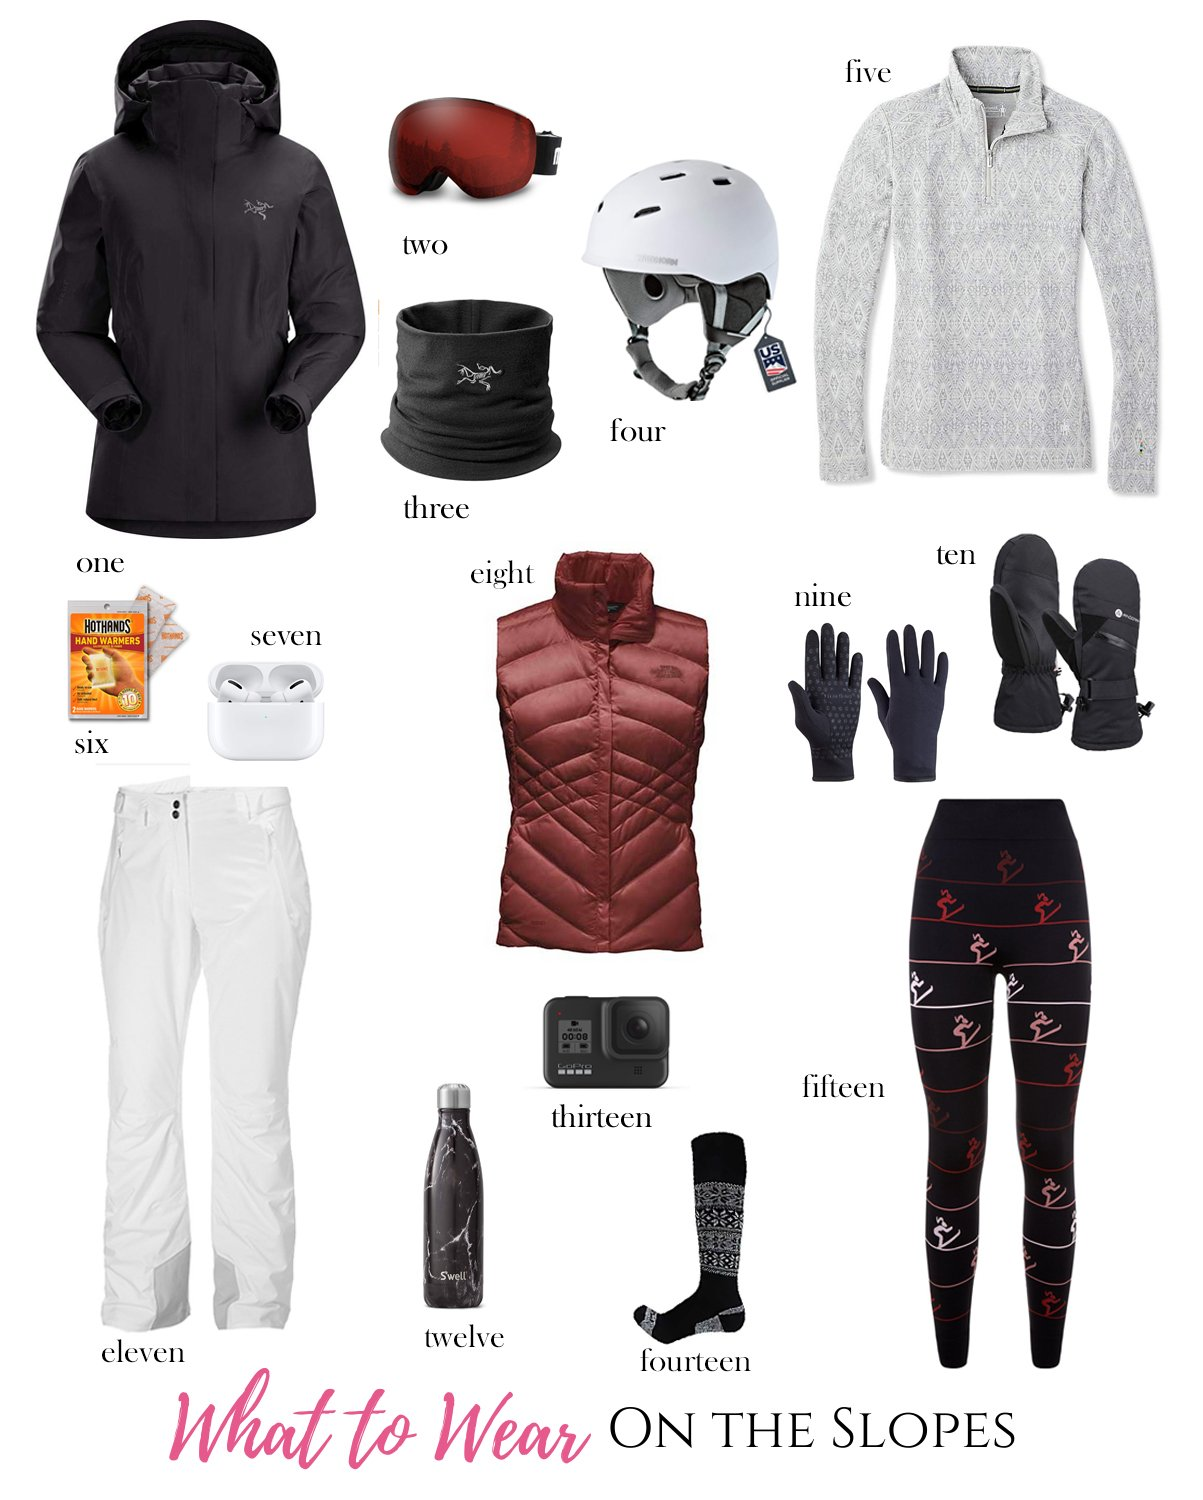 what to wear on the slopes - ski trip packing list